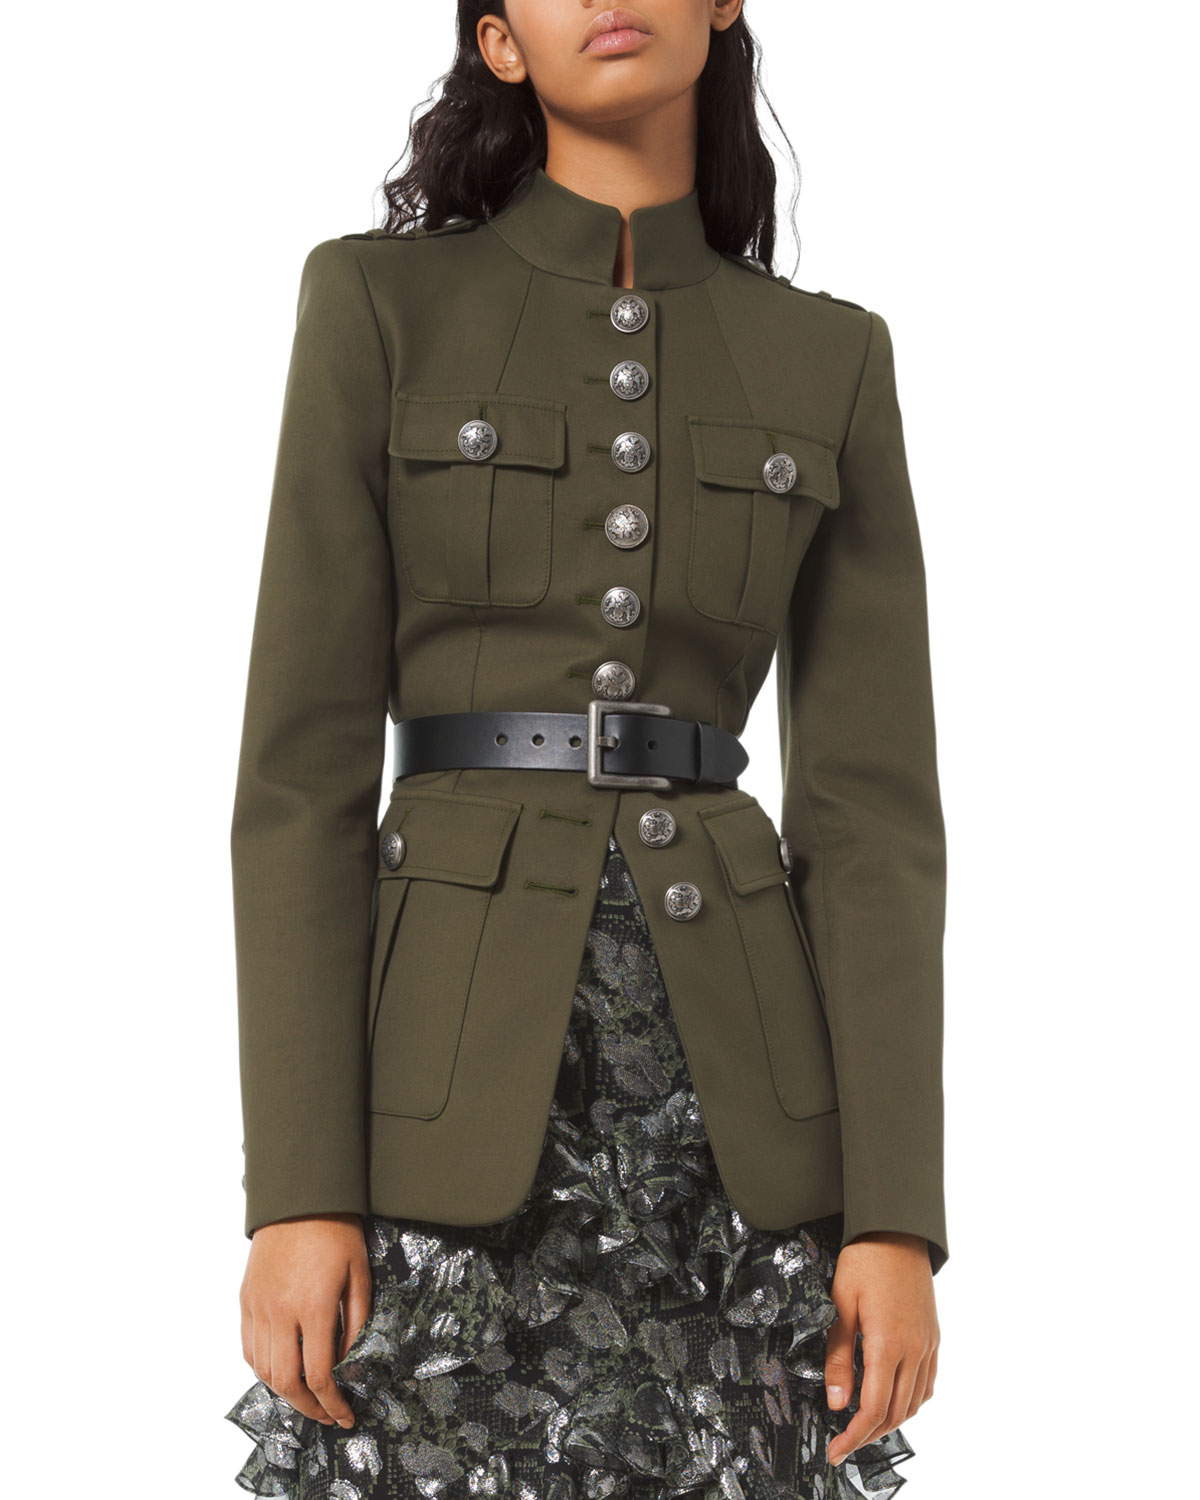 1912603ecde08 Michael Kors Collection Twill Military Jacket